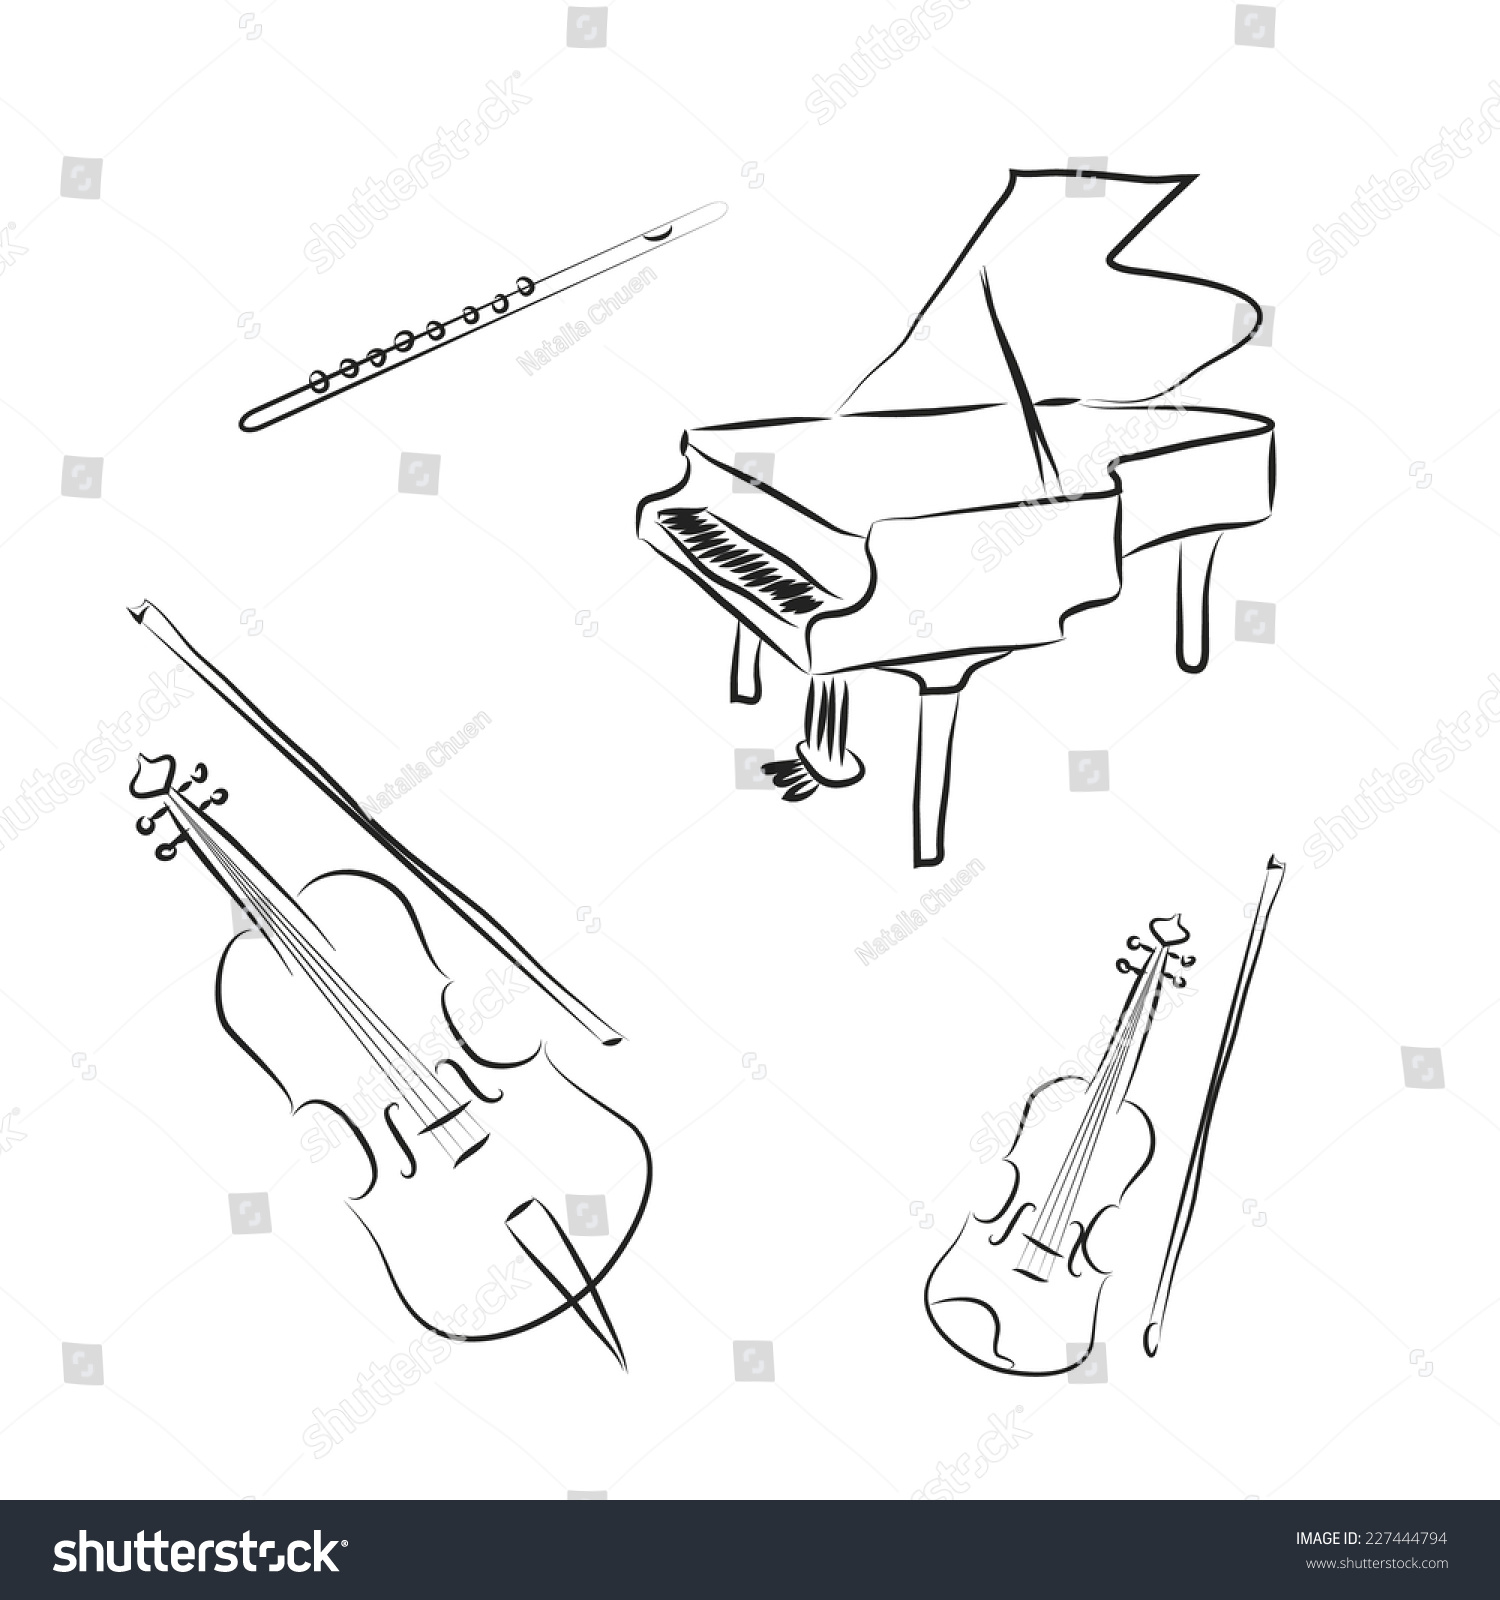 flute coloring page - black white cartoon music instruments violin stock vector